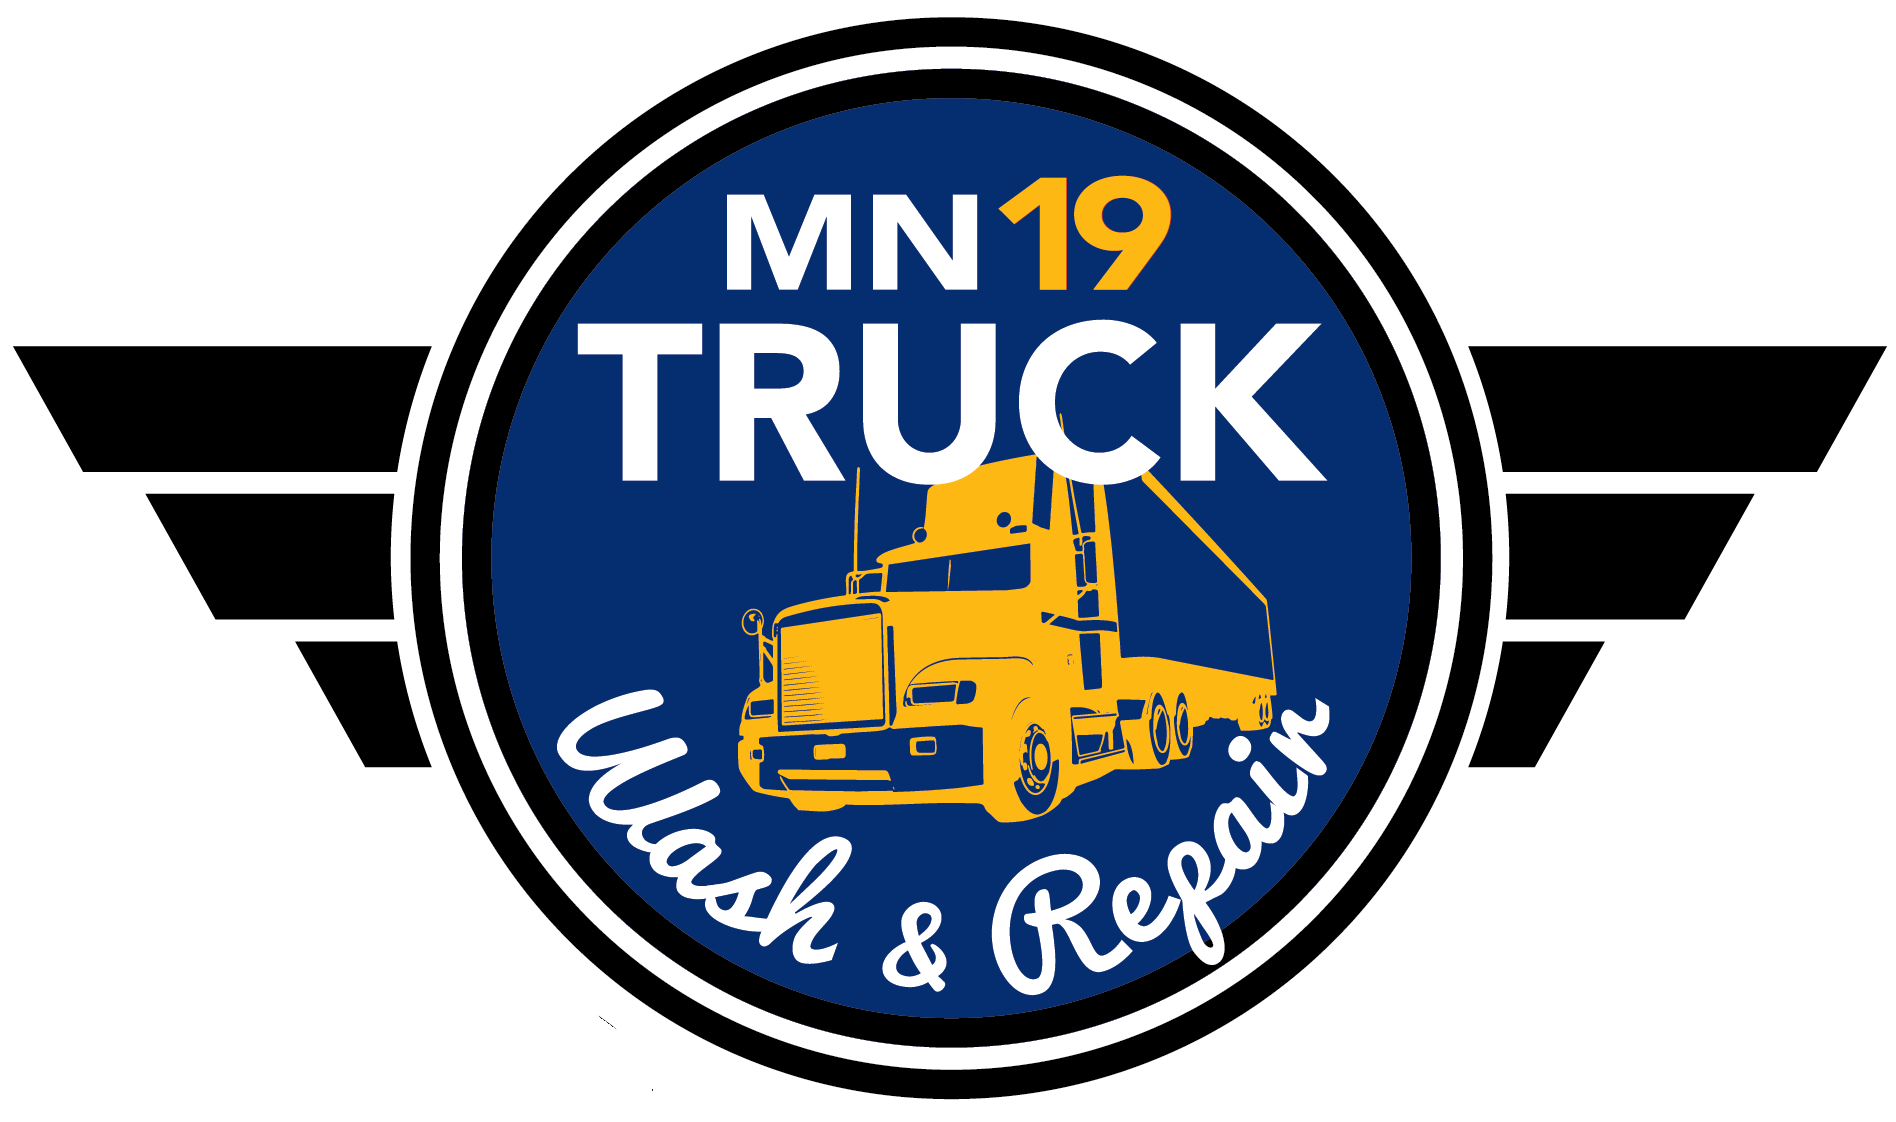 MN 19 Truck Wash & Repair logo